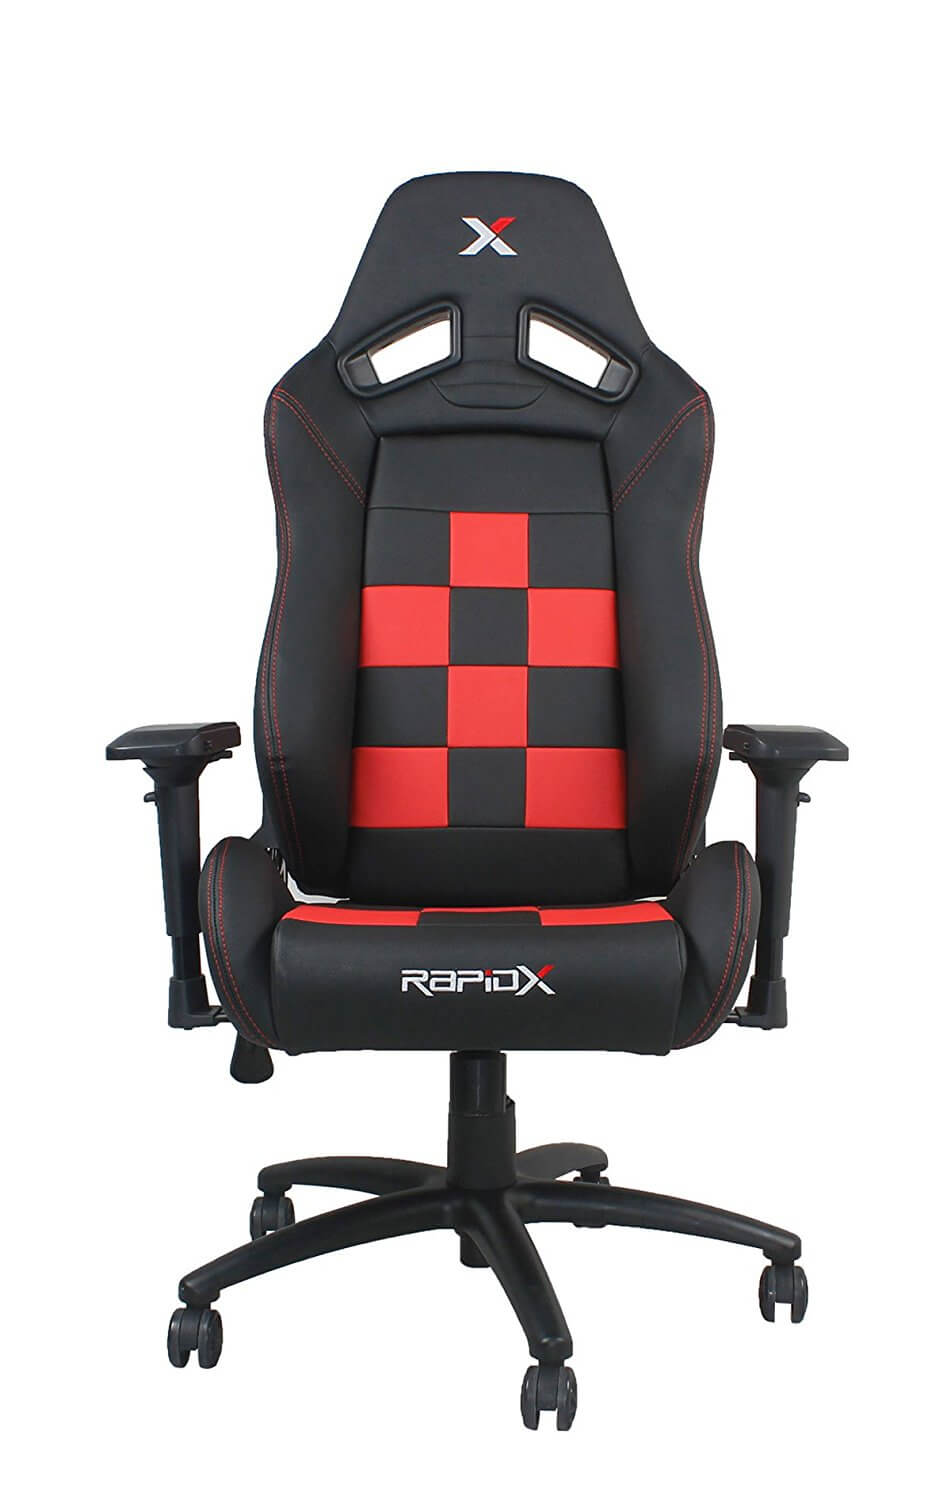 Top 10 Video Game Chair Brands For The Ultimate Gamer